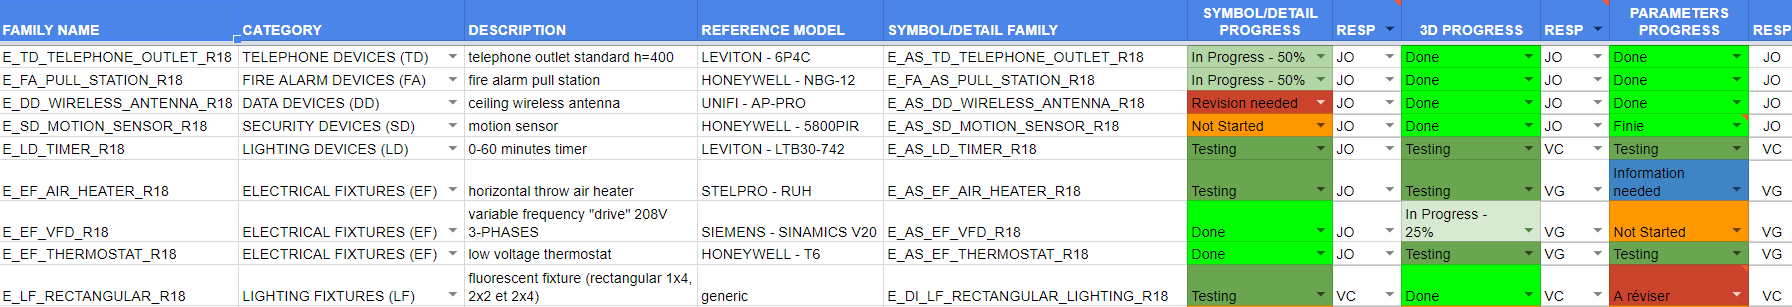 Figure 4.0 - Monitoring tab for electrical families